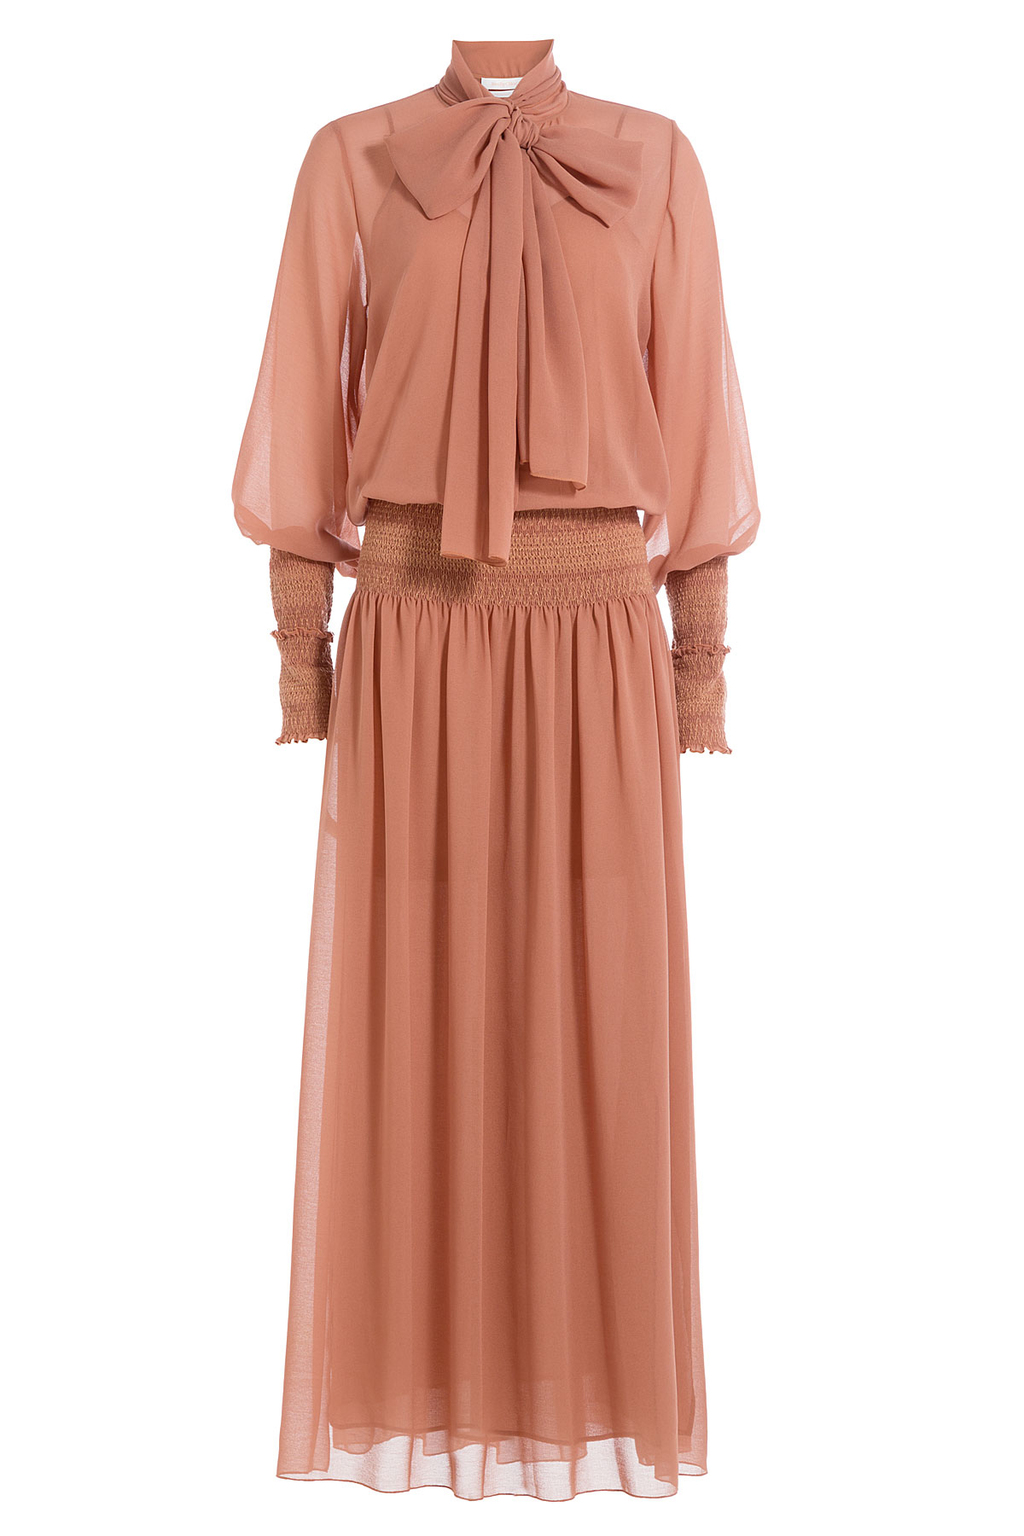 Chiffon Maxi Dress - pattern: plain; style: maxi dress; length: ankle length; neckline: pussy bow; predominant colour: terracotta; occasions: evening, occasion; fit: soft a-line; fibres: polyester/polyamide - 100%; sleeve length: long sleeve; sleeve style: standard; texture group: sheer fabrics/chiffon/organza etc.; pattern type: fabric; season: s/s 2016; wardrobe: event